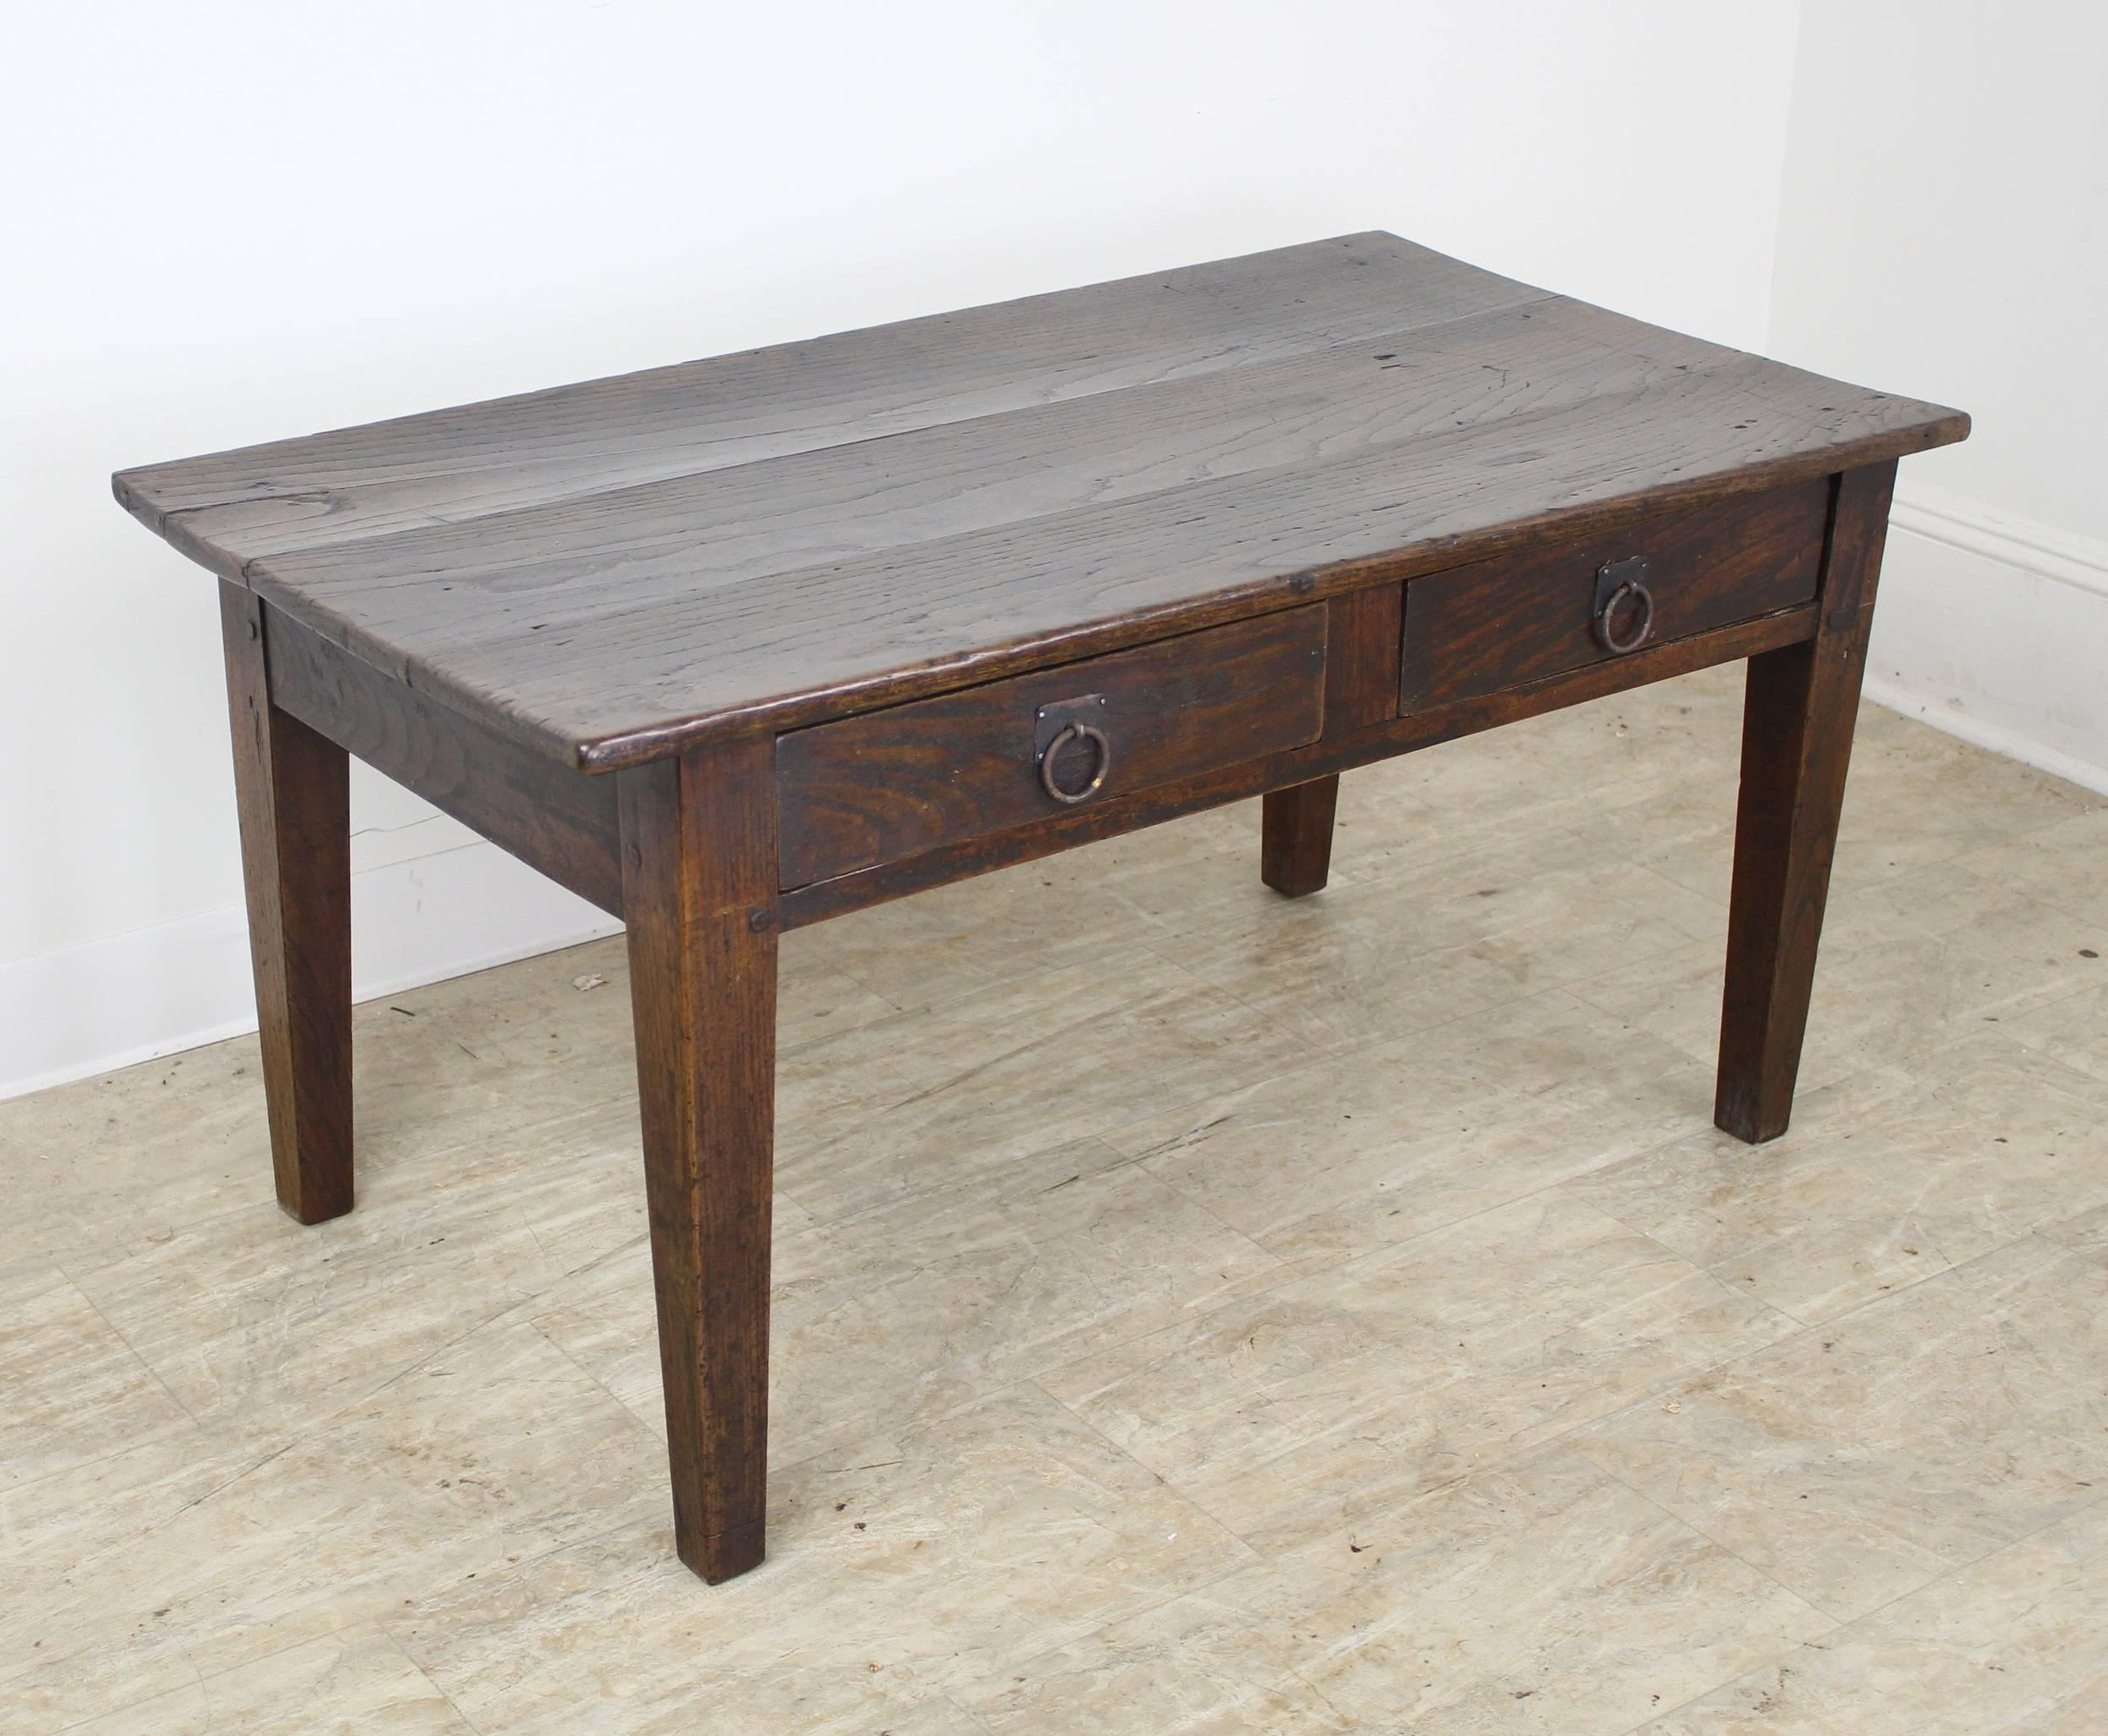 A Sturdy And Handsome Dark Chestnut Coffee Table, With Two Drawers For  Storage And Visual